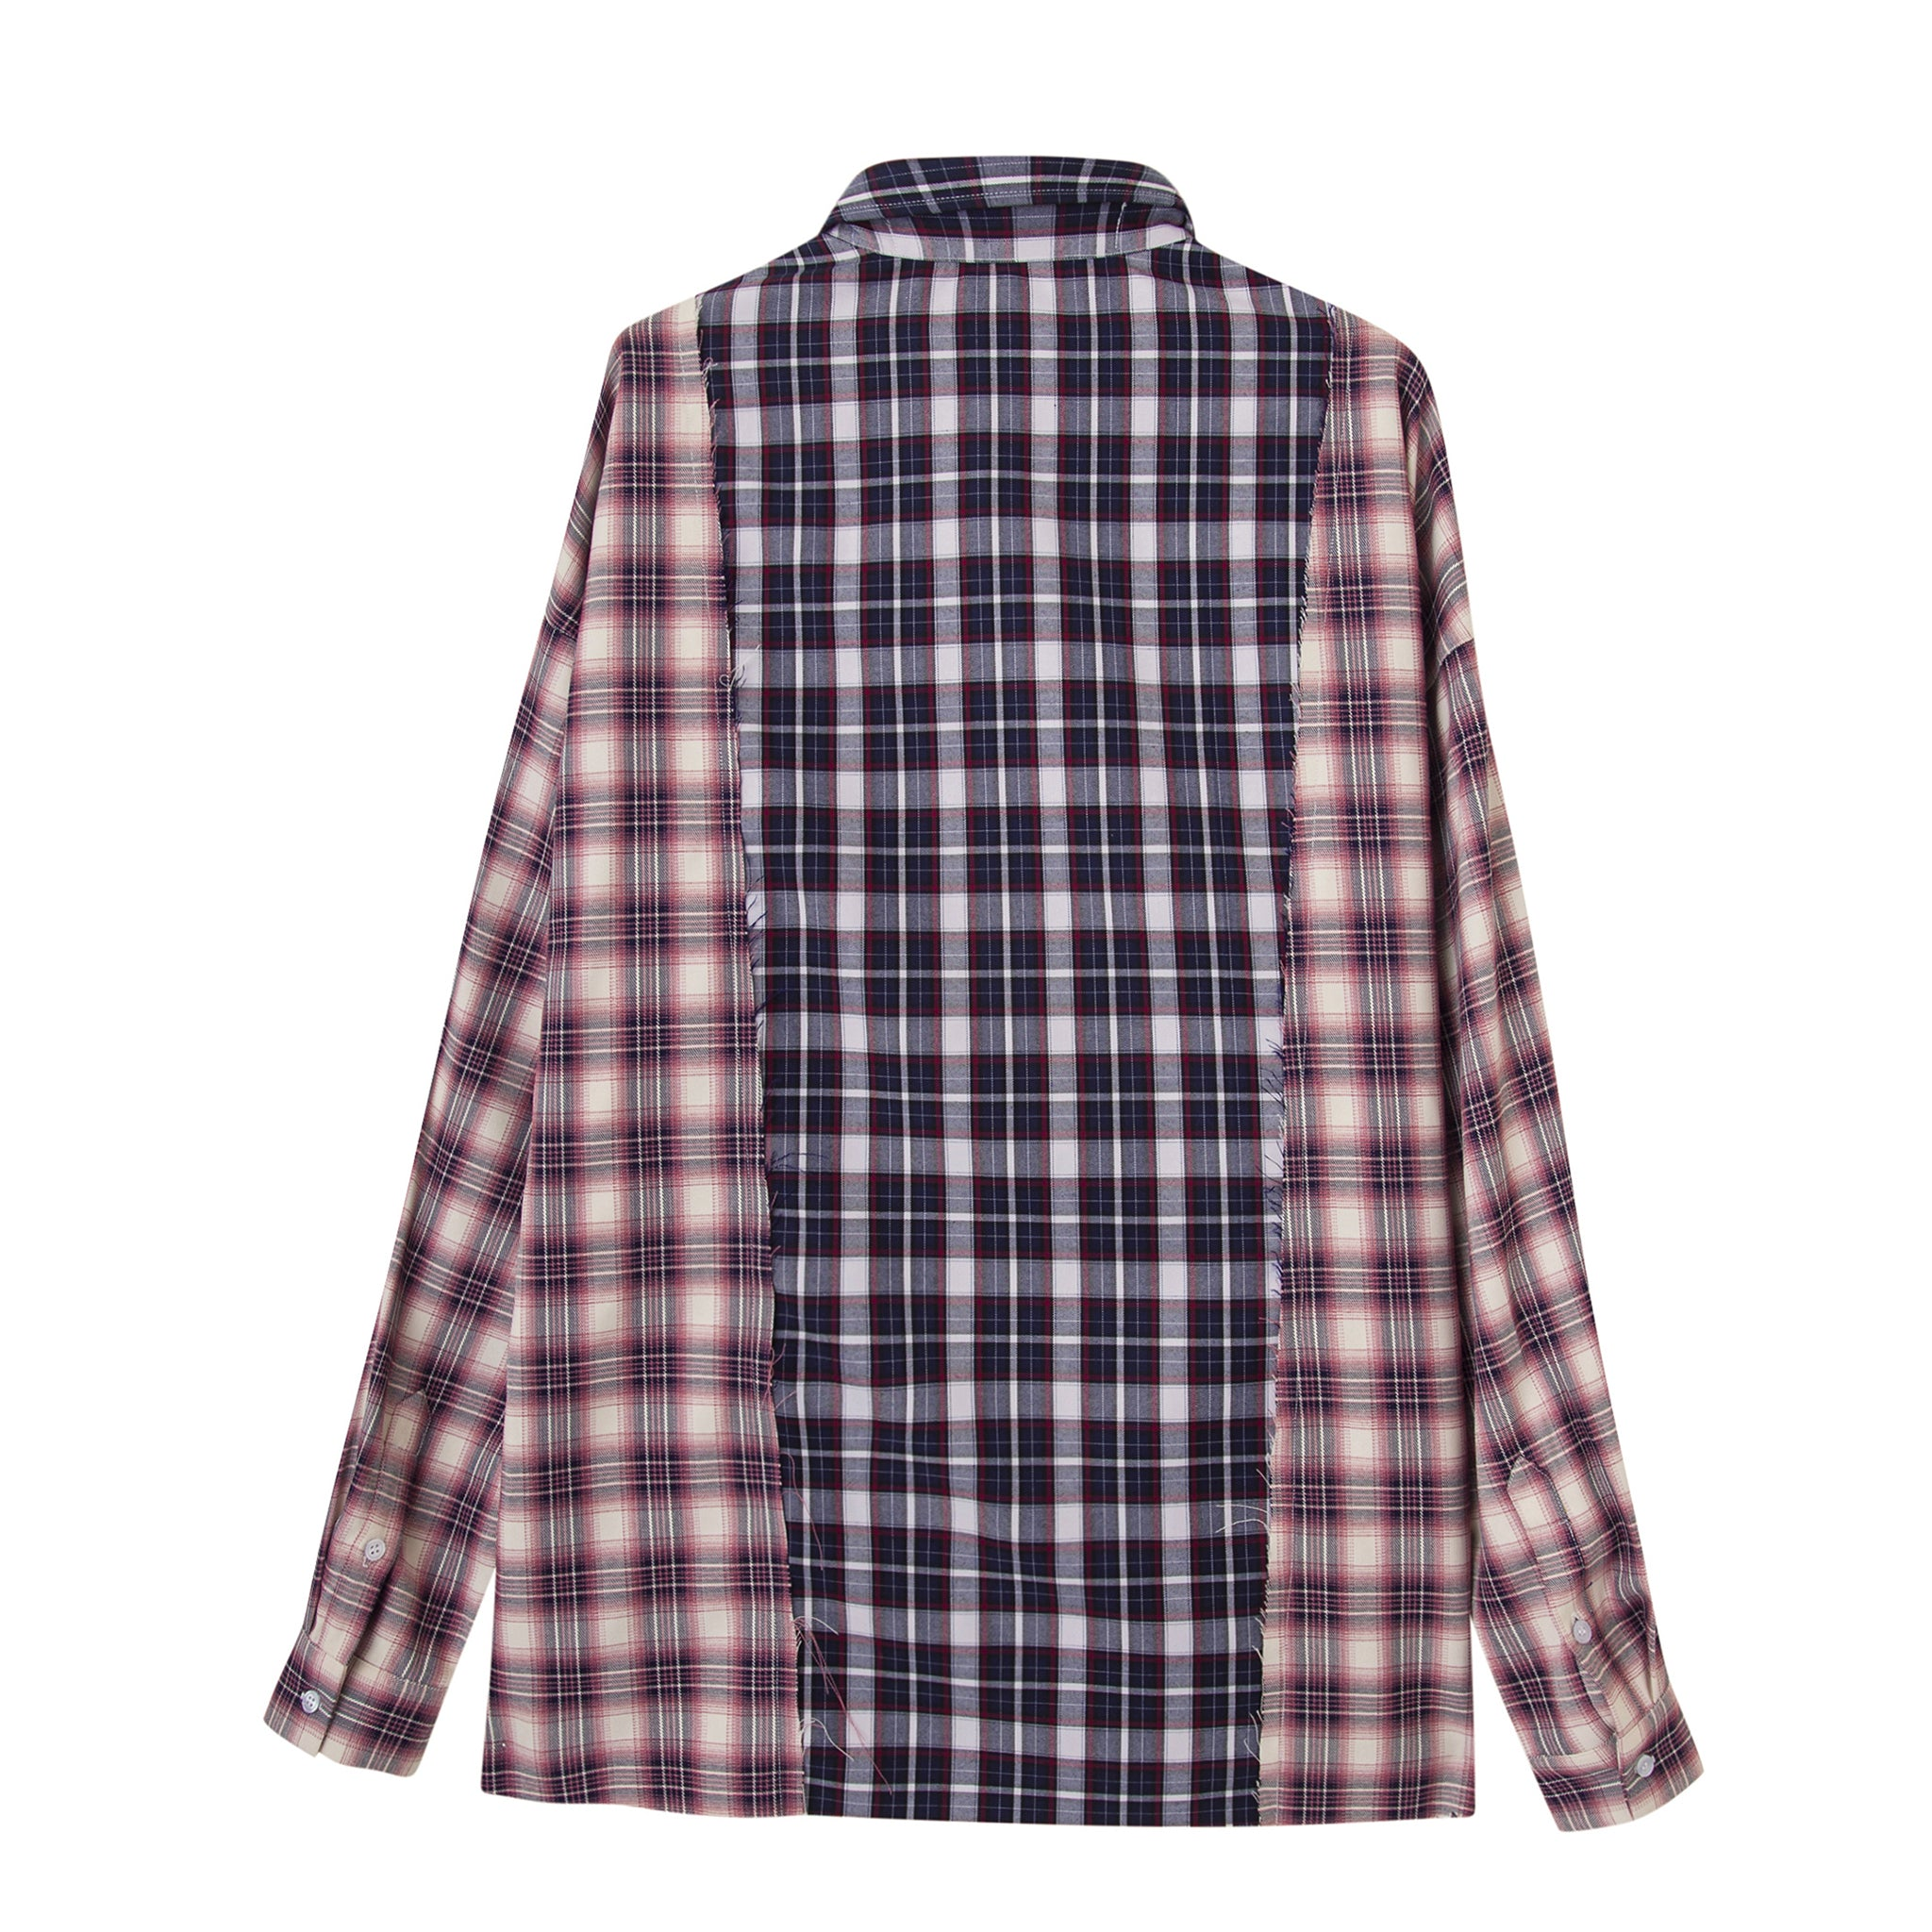 LFD Two-way check shirt